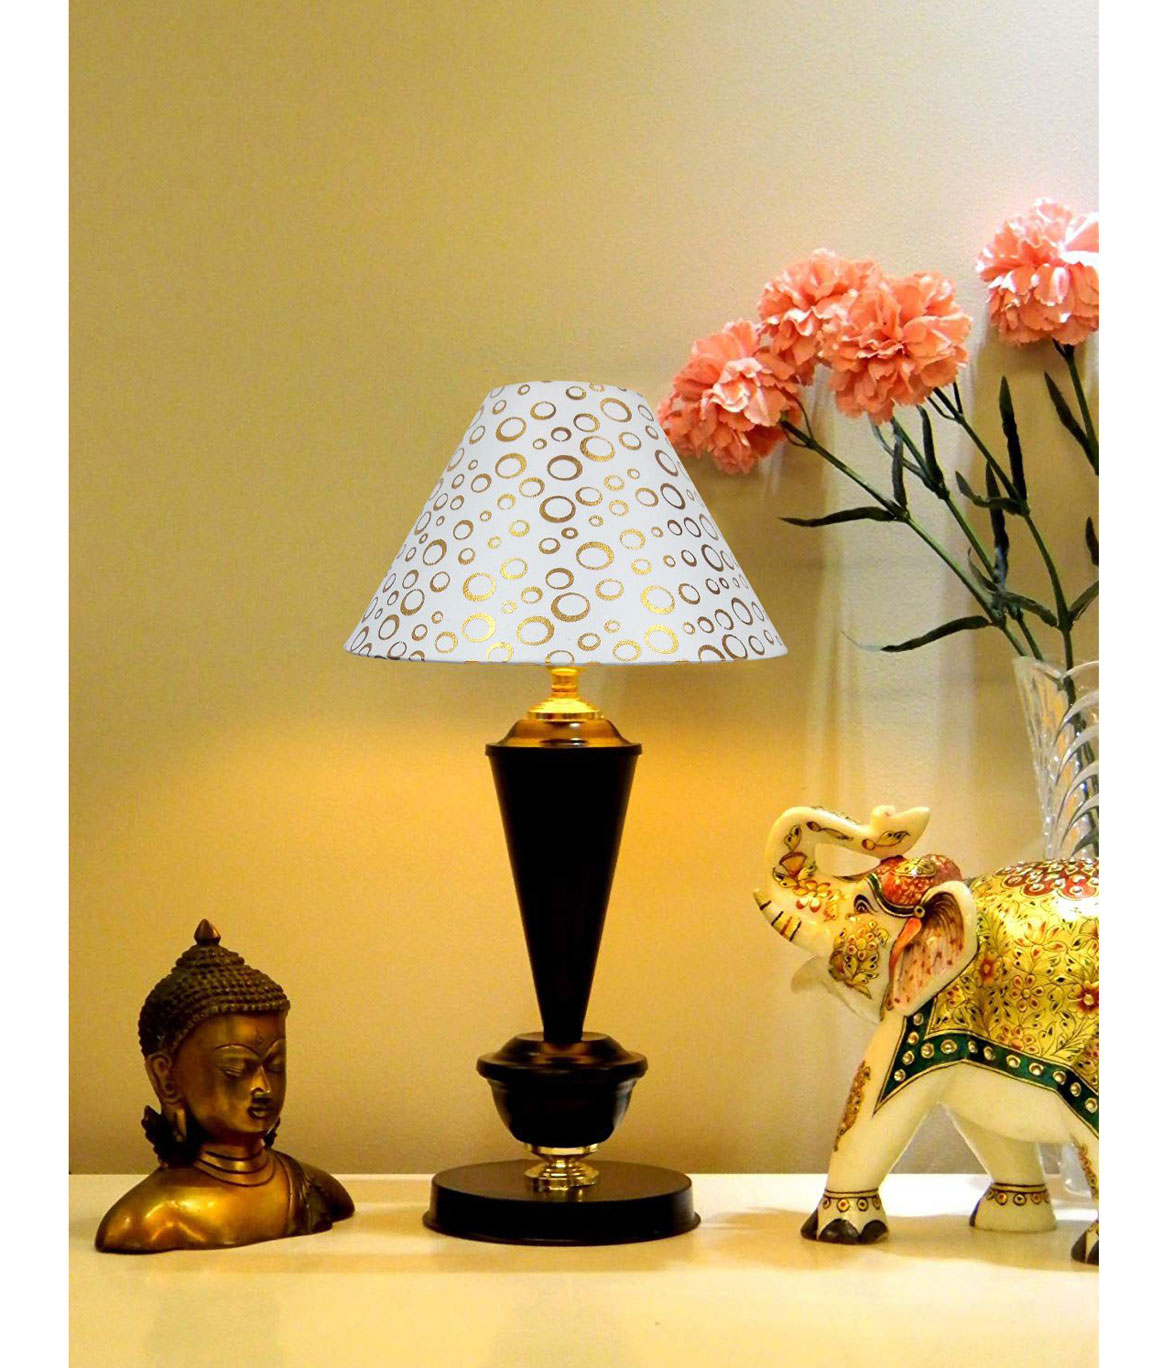 RDC Black with Golden Base Table Lamp with 10 Inches Round White with Golden Polka Dots Designer Lamp Shade